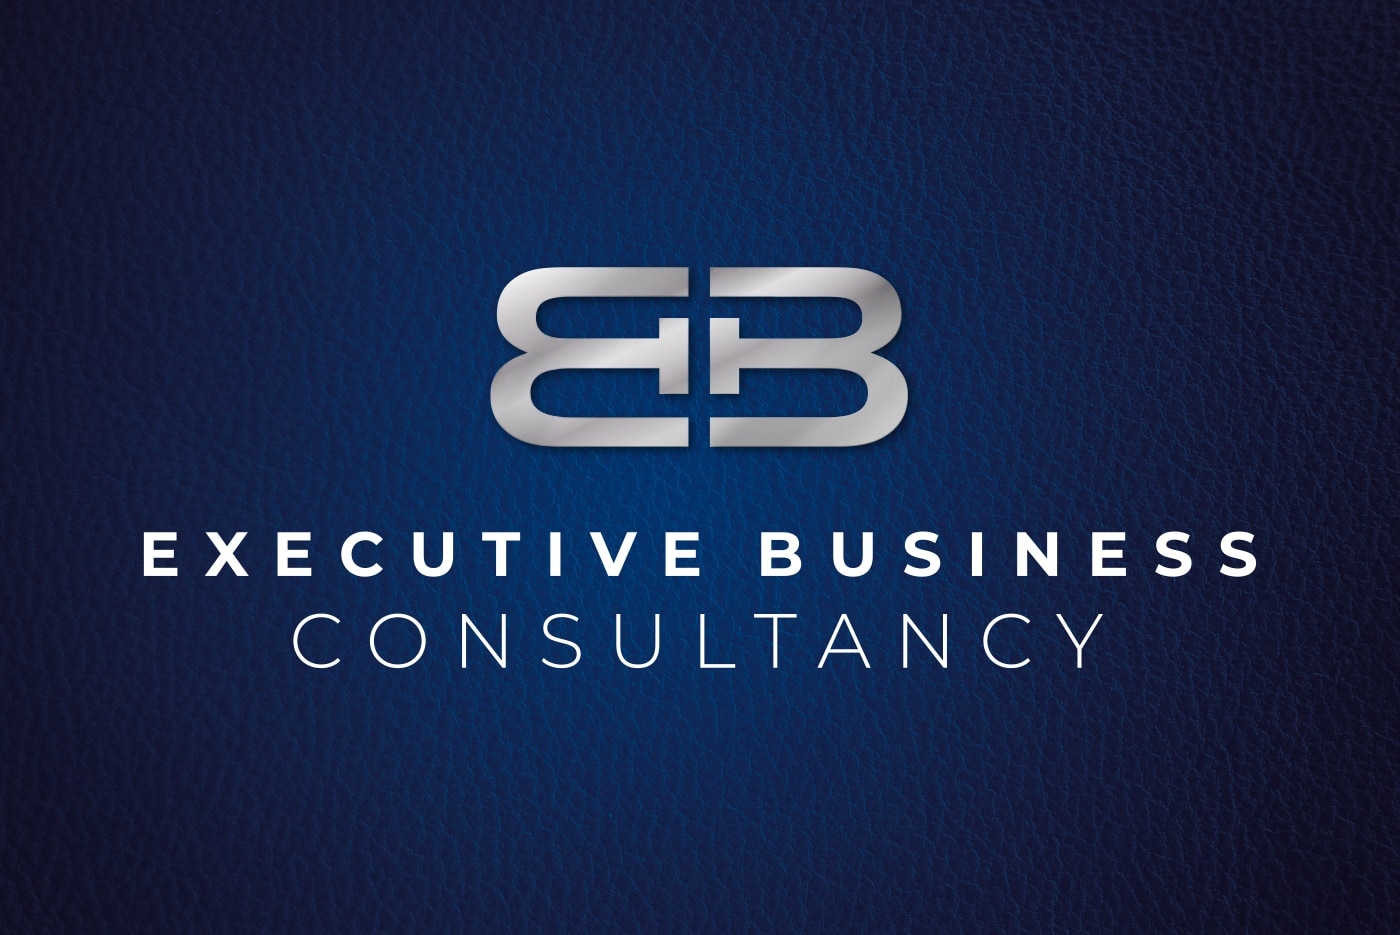 Executive Business Consultancy